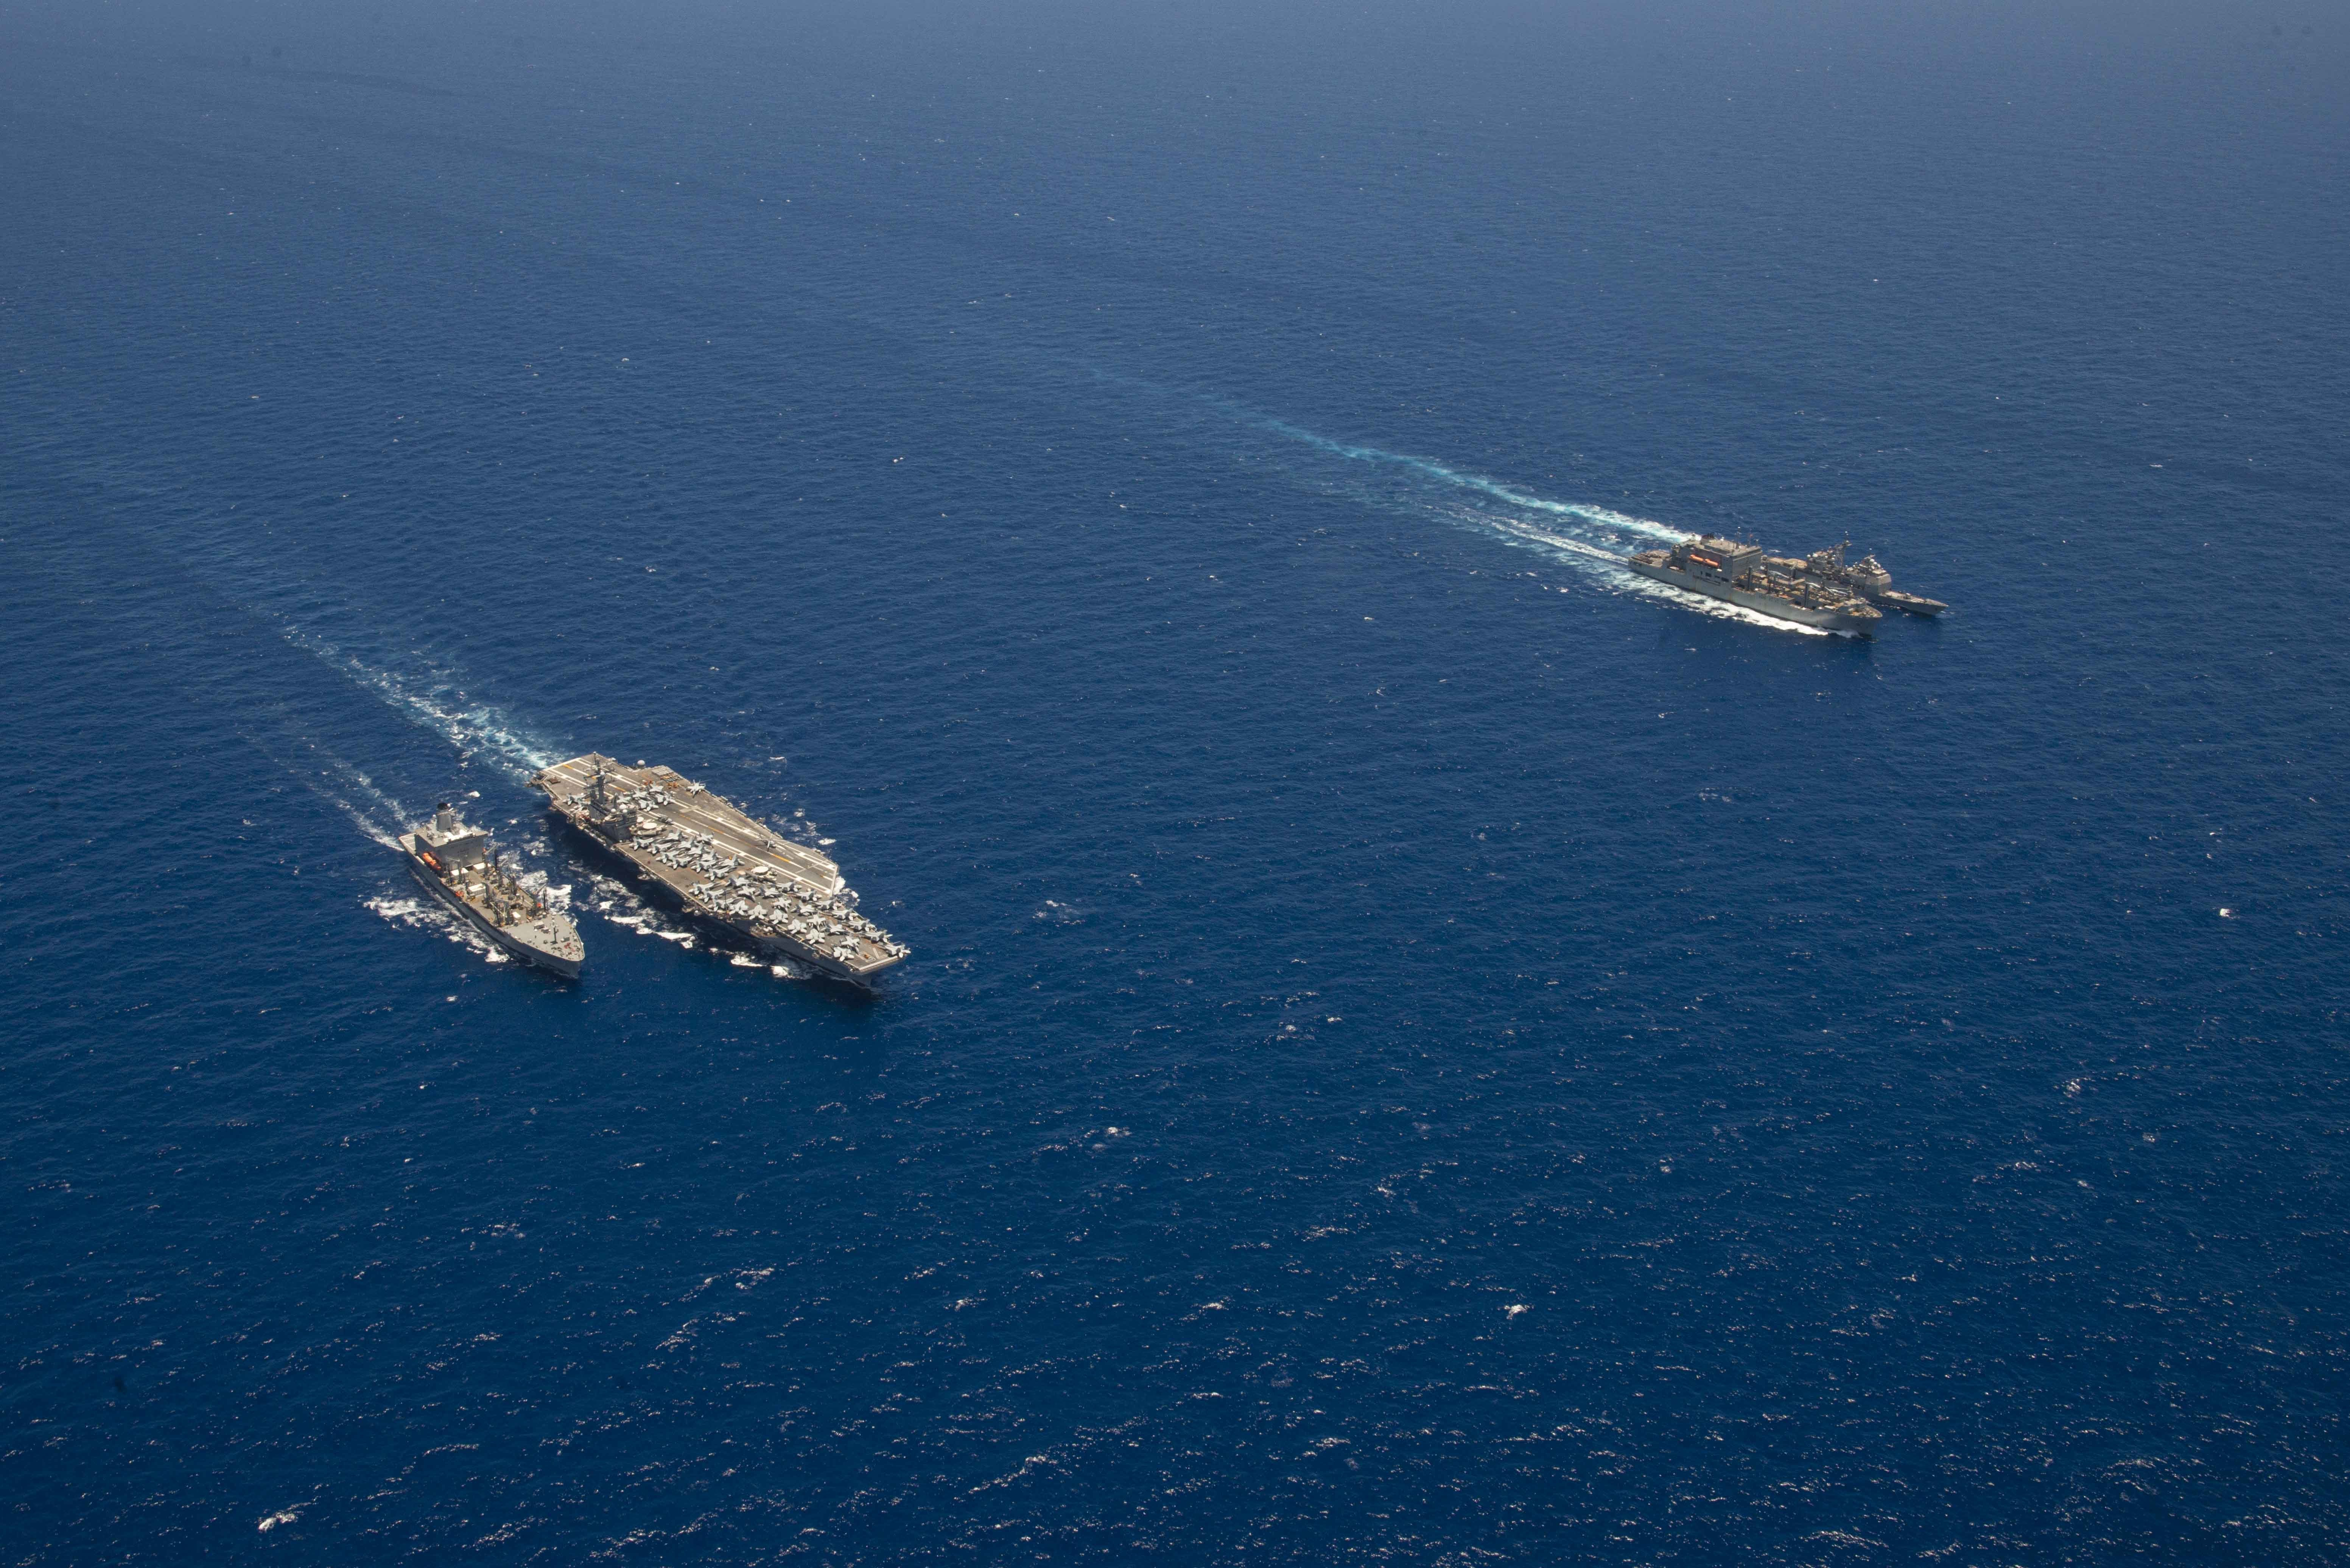 USS Ronald Reagan (CVN 76), conducts a fueling-at-sea with the fleet replenishment oiler USNS Pecos (T-AO 195), while USS Shiloh (CG 67) conducts a USNS Charles Drew (T-AKE 10).